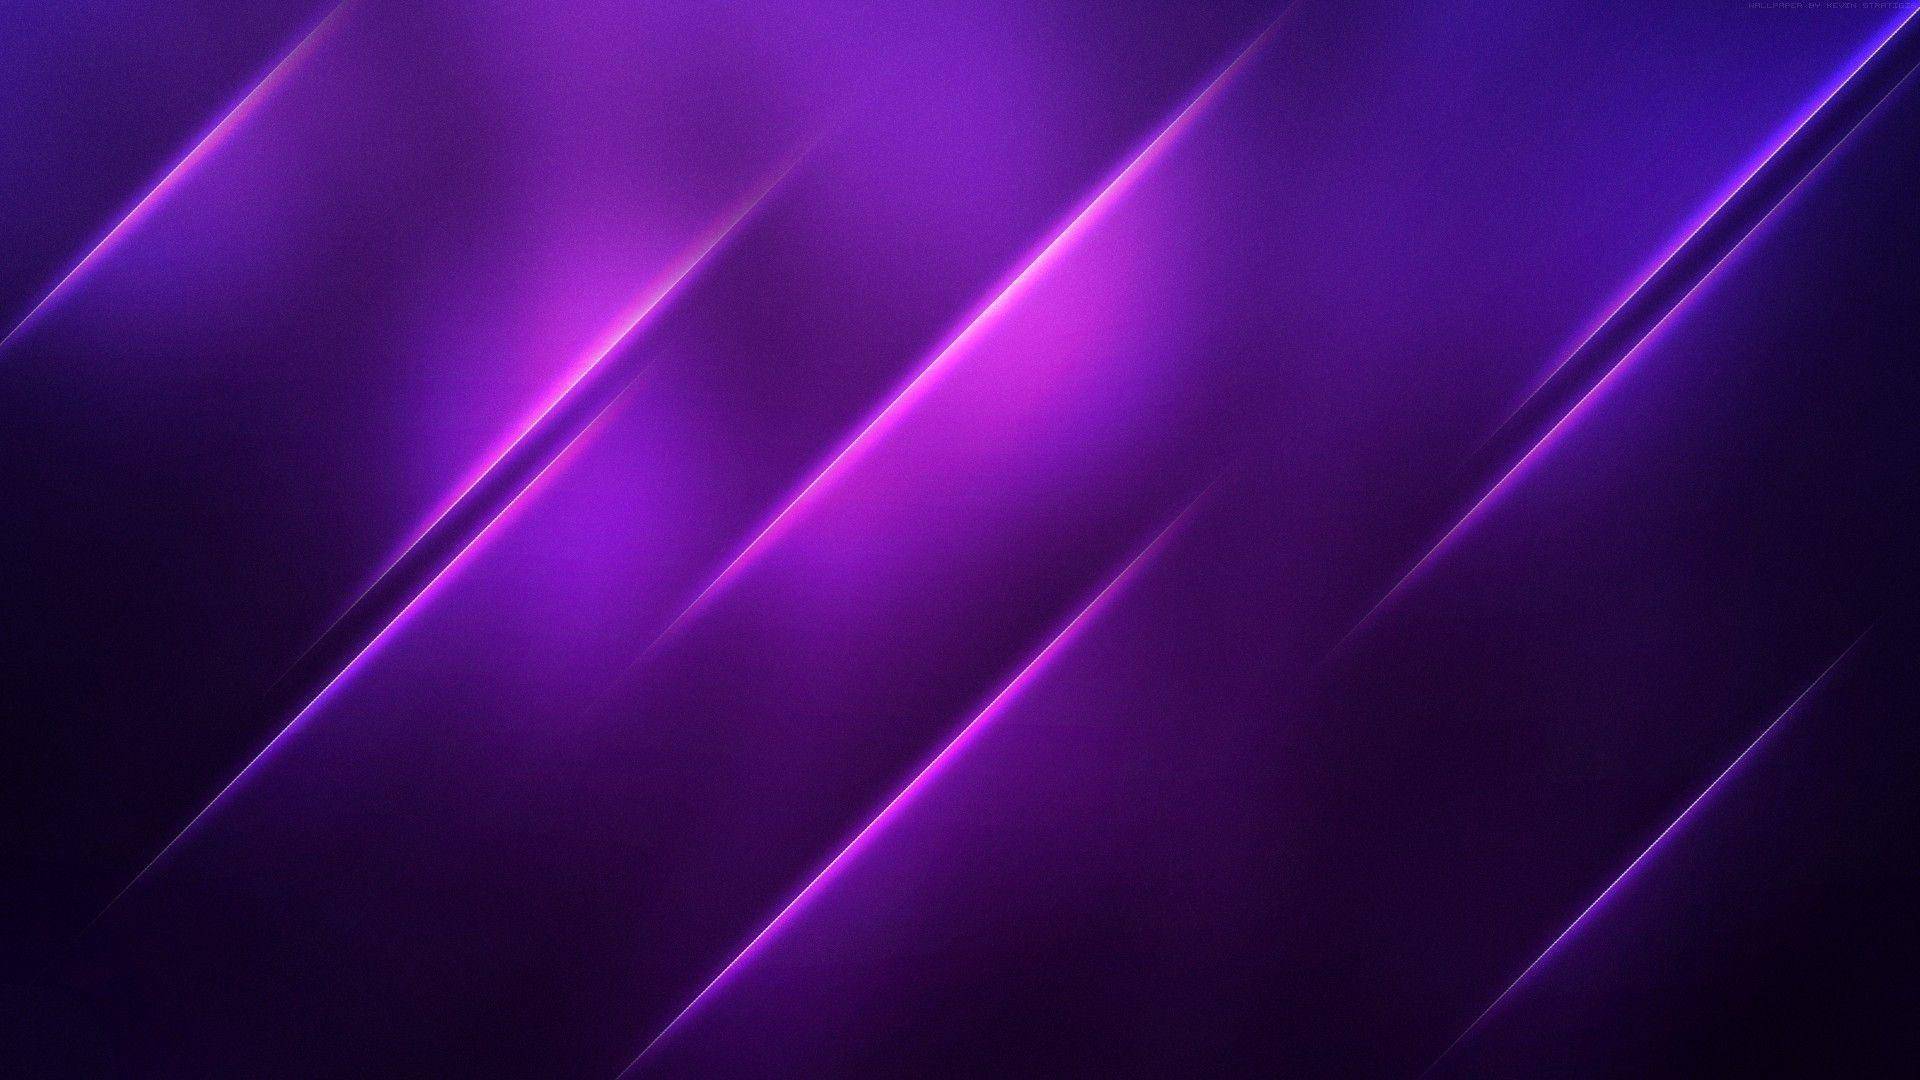 Purple Backgrounds Wallpapers 1920x1080